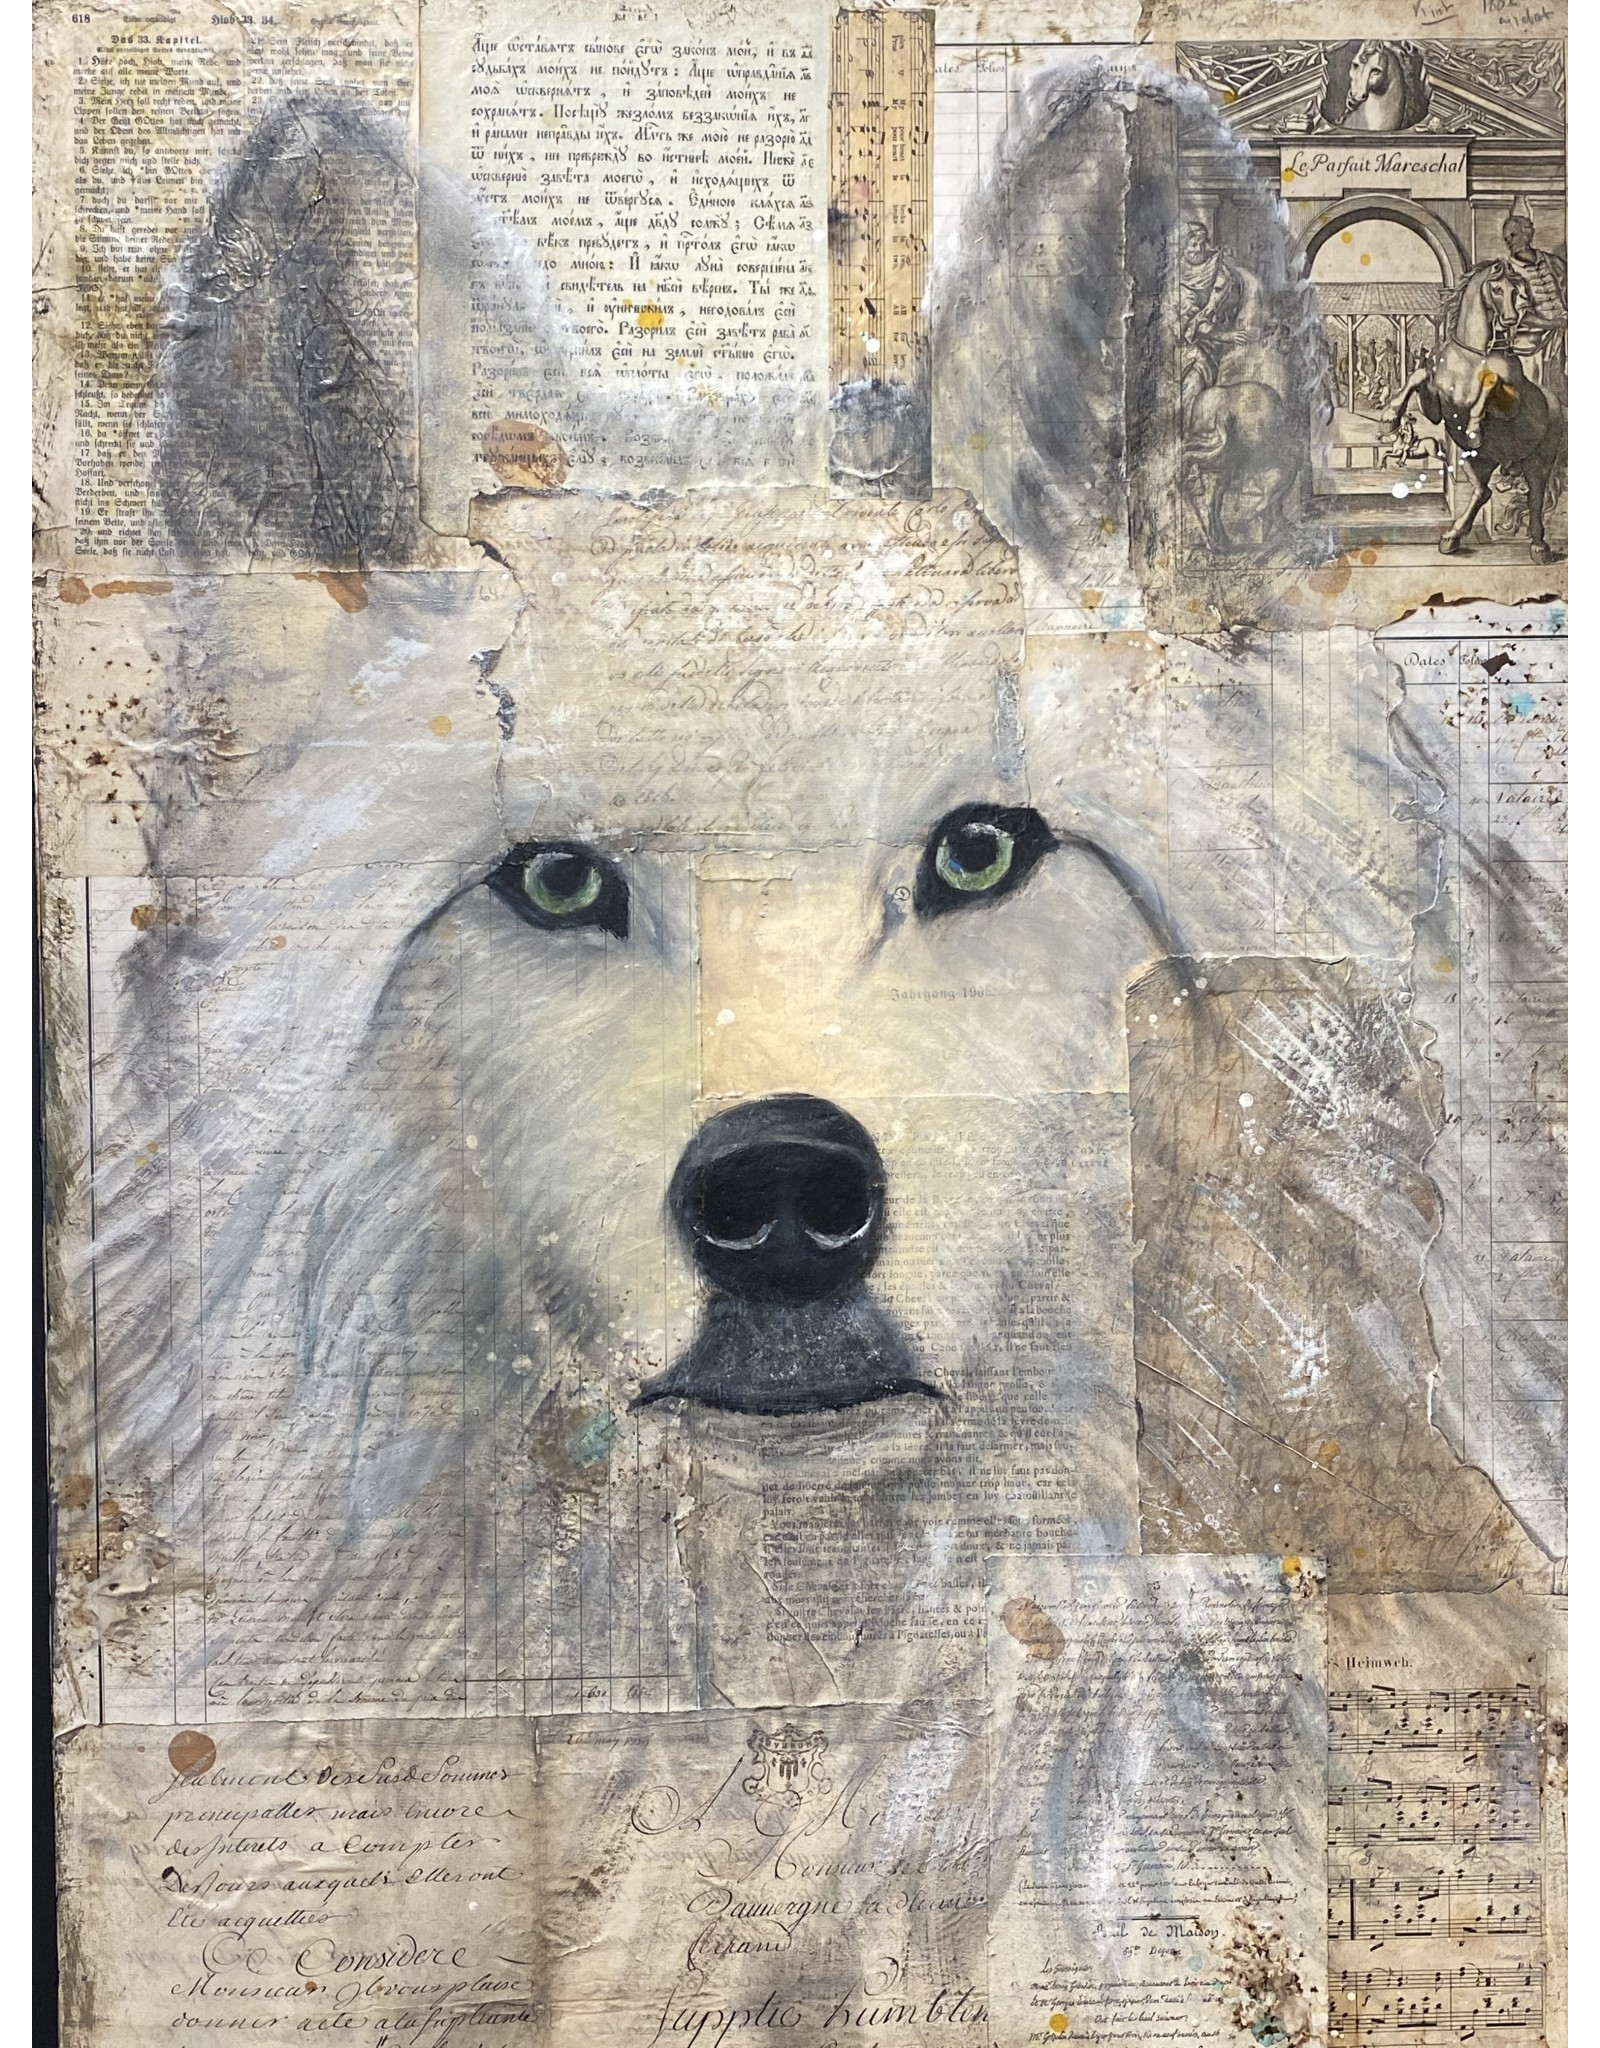 Annette Colby - Painter Luna - Annette Colby